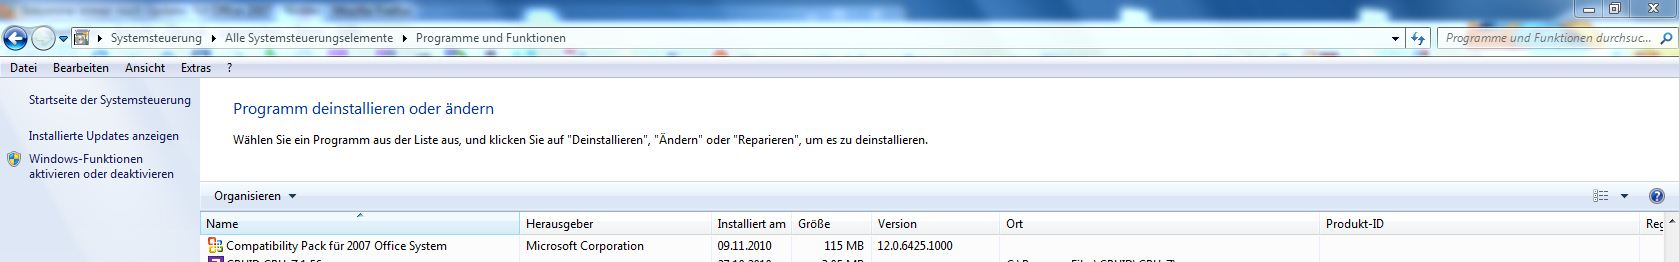 Bekomme immer noch updates f t office 2007 - Office compatibility pack for office 2007 ...